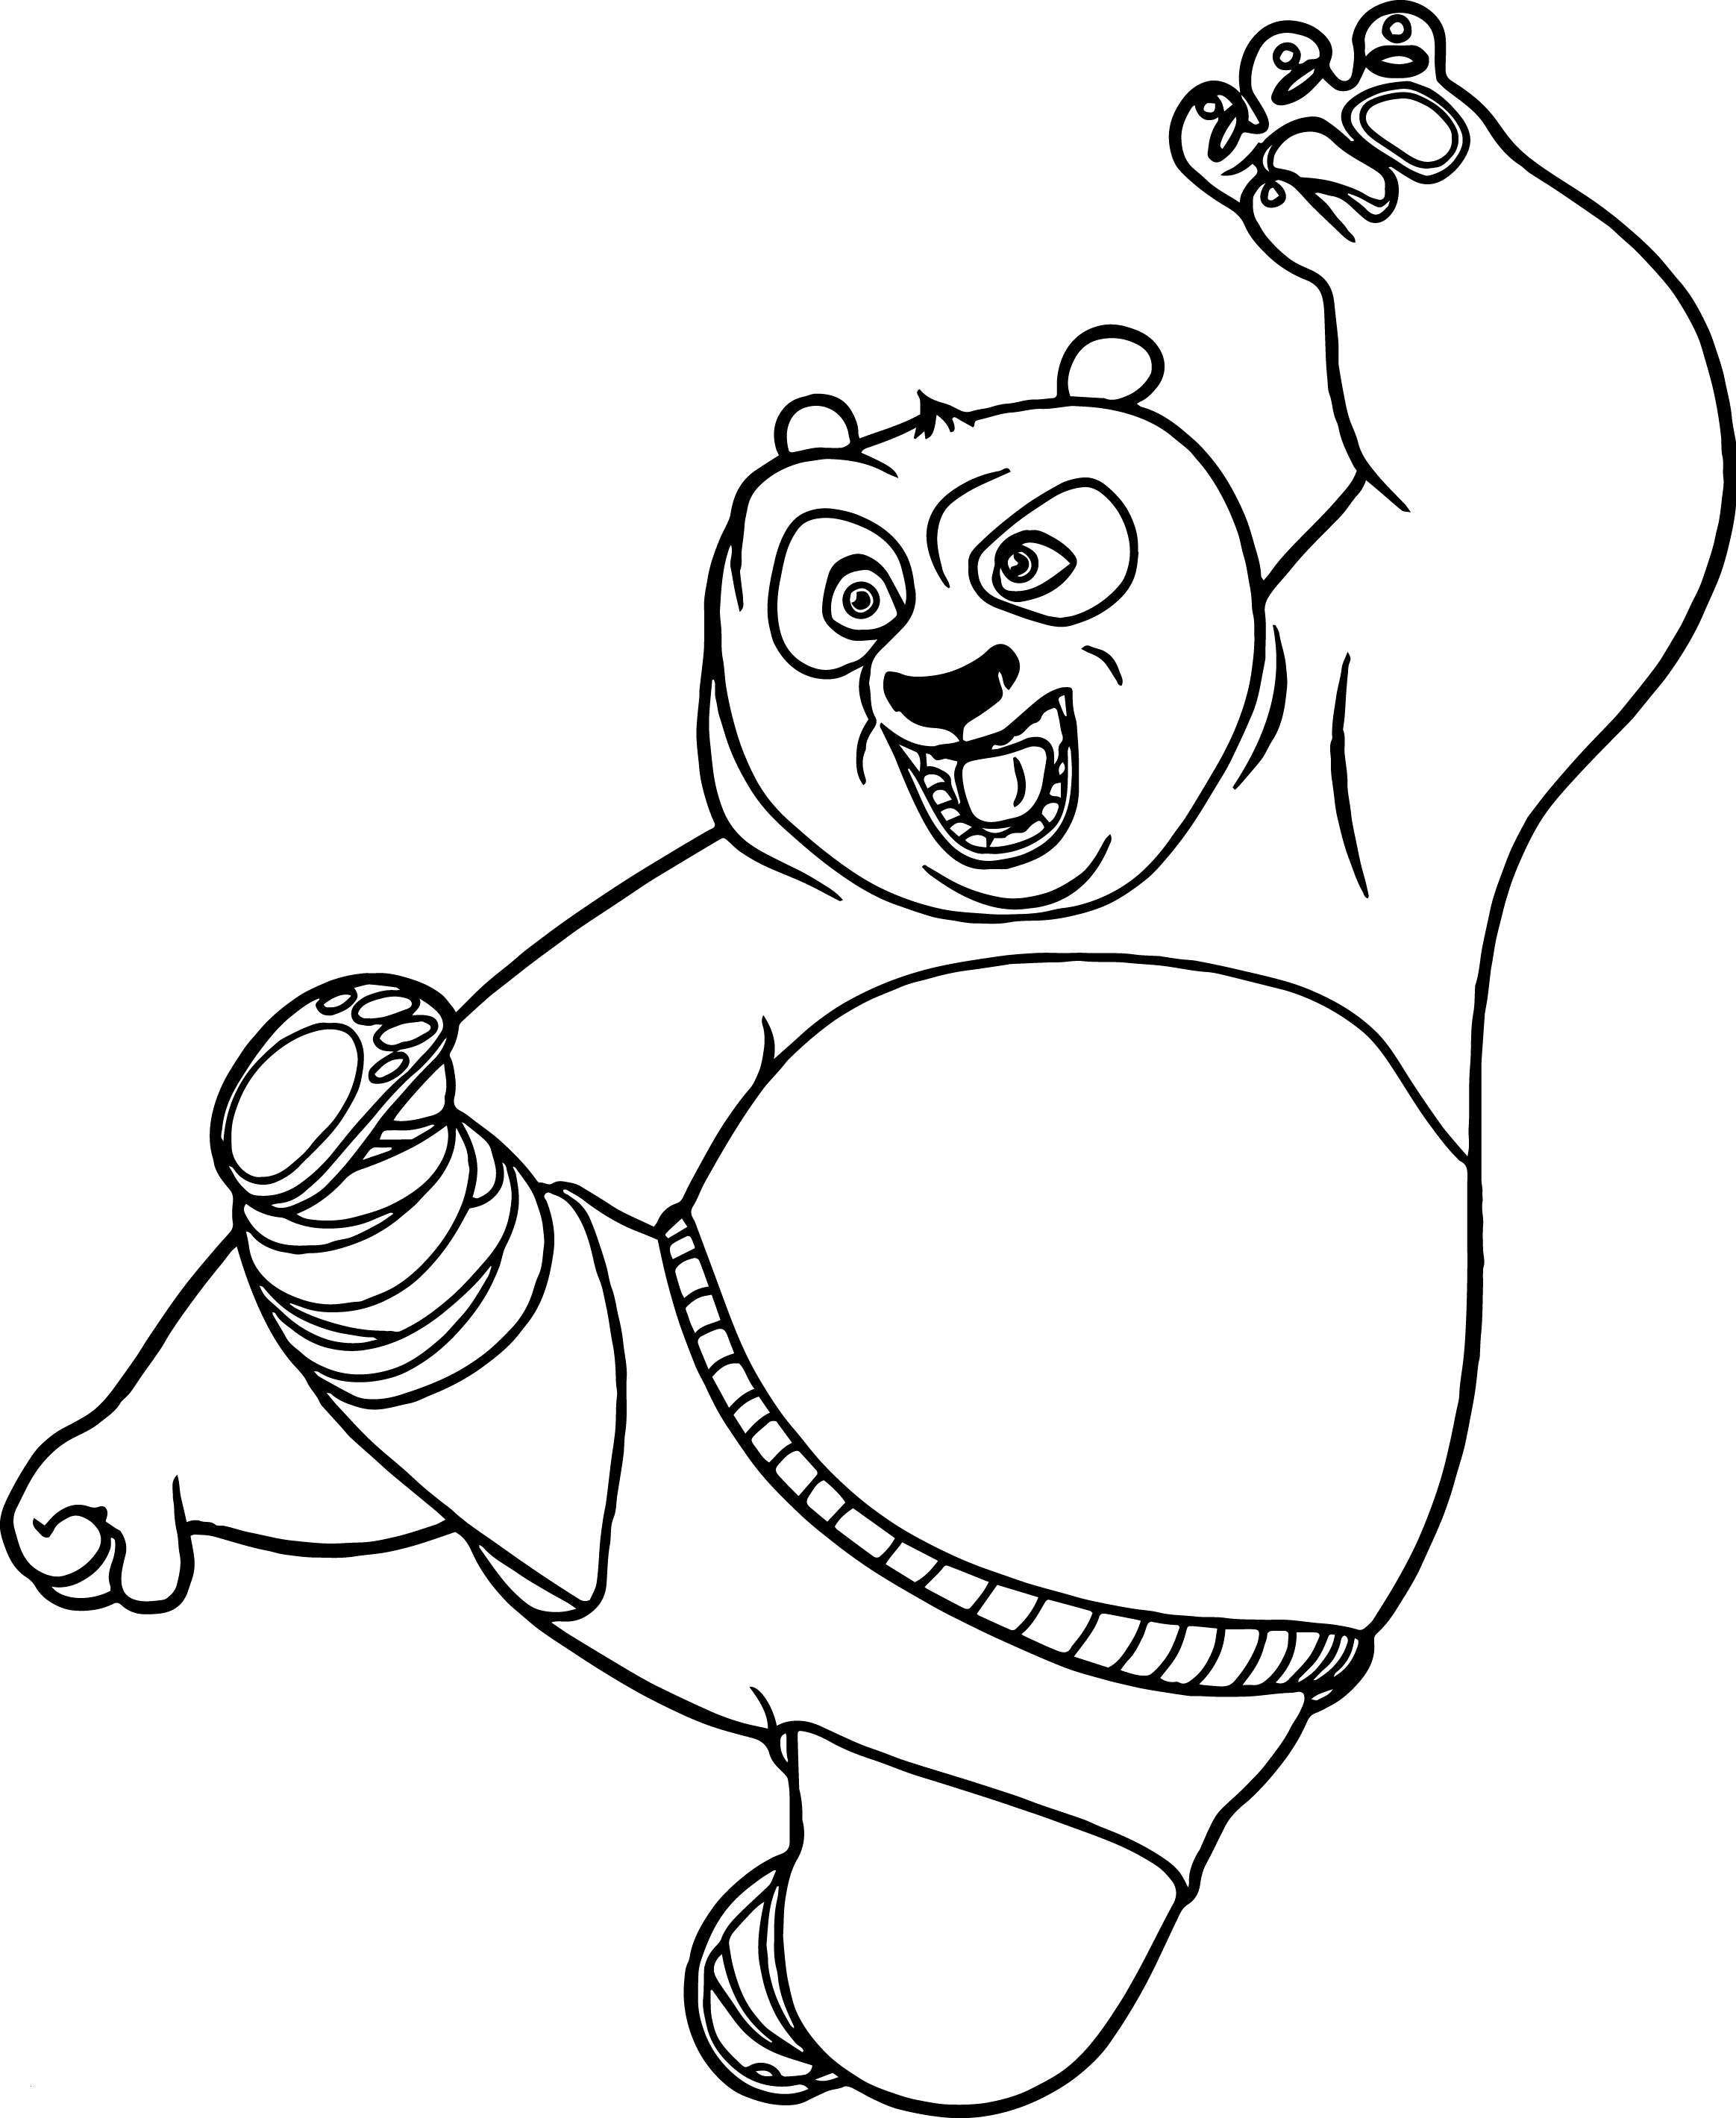 Panda Bear Coloring Pages Panda Bear Panda Bear What Do You See Coloring Pages Fresh Classic